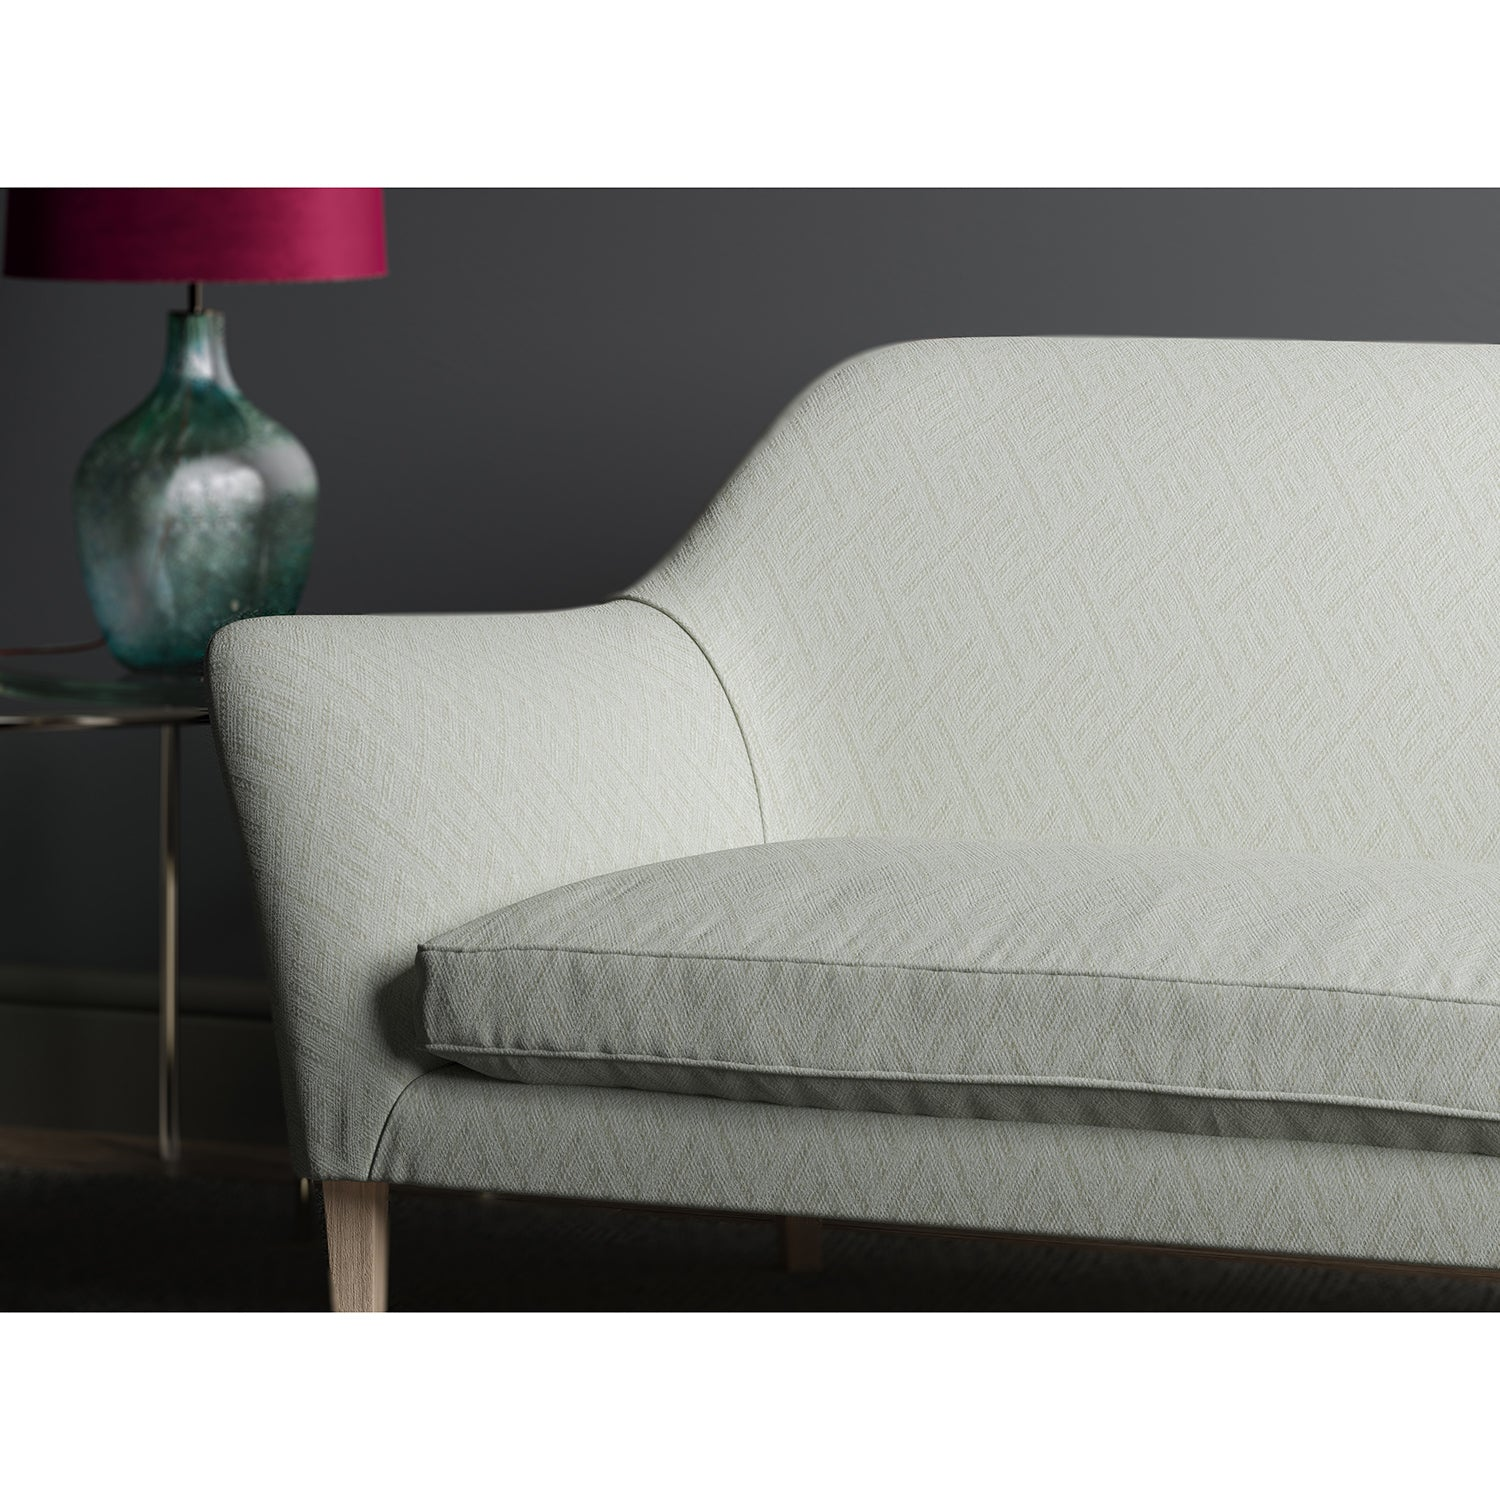 Sofa in design name Rumba, colourway Cream from Tango Weaves